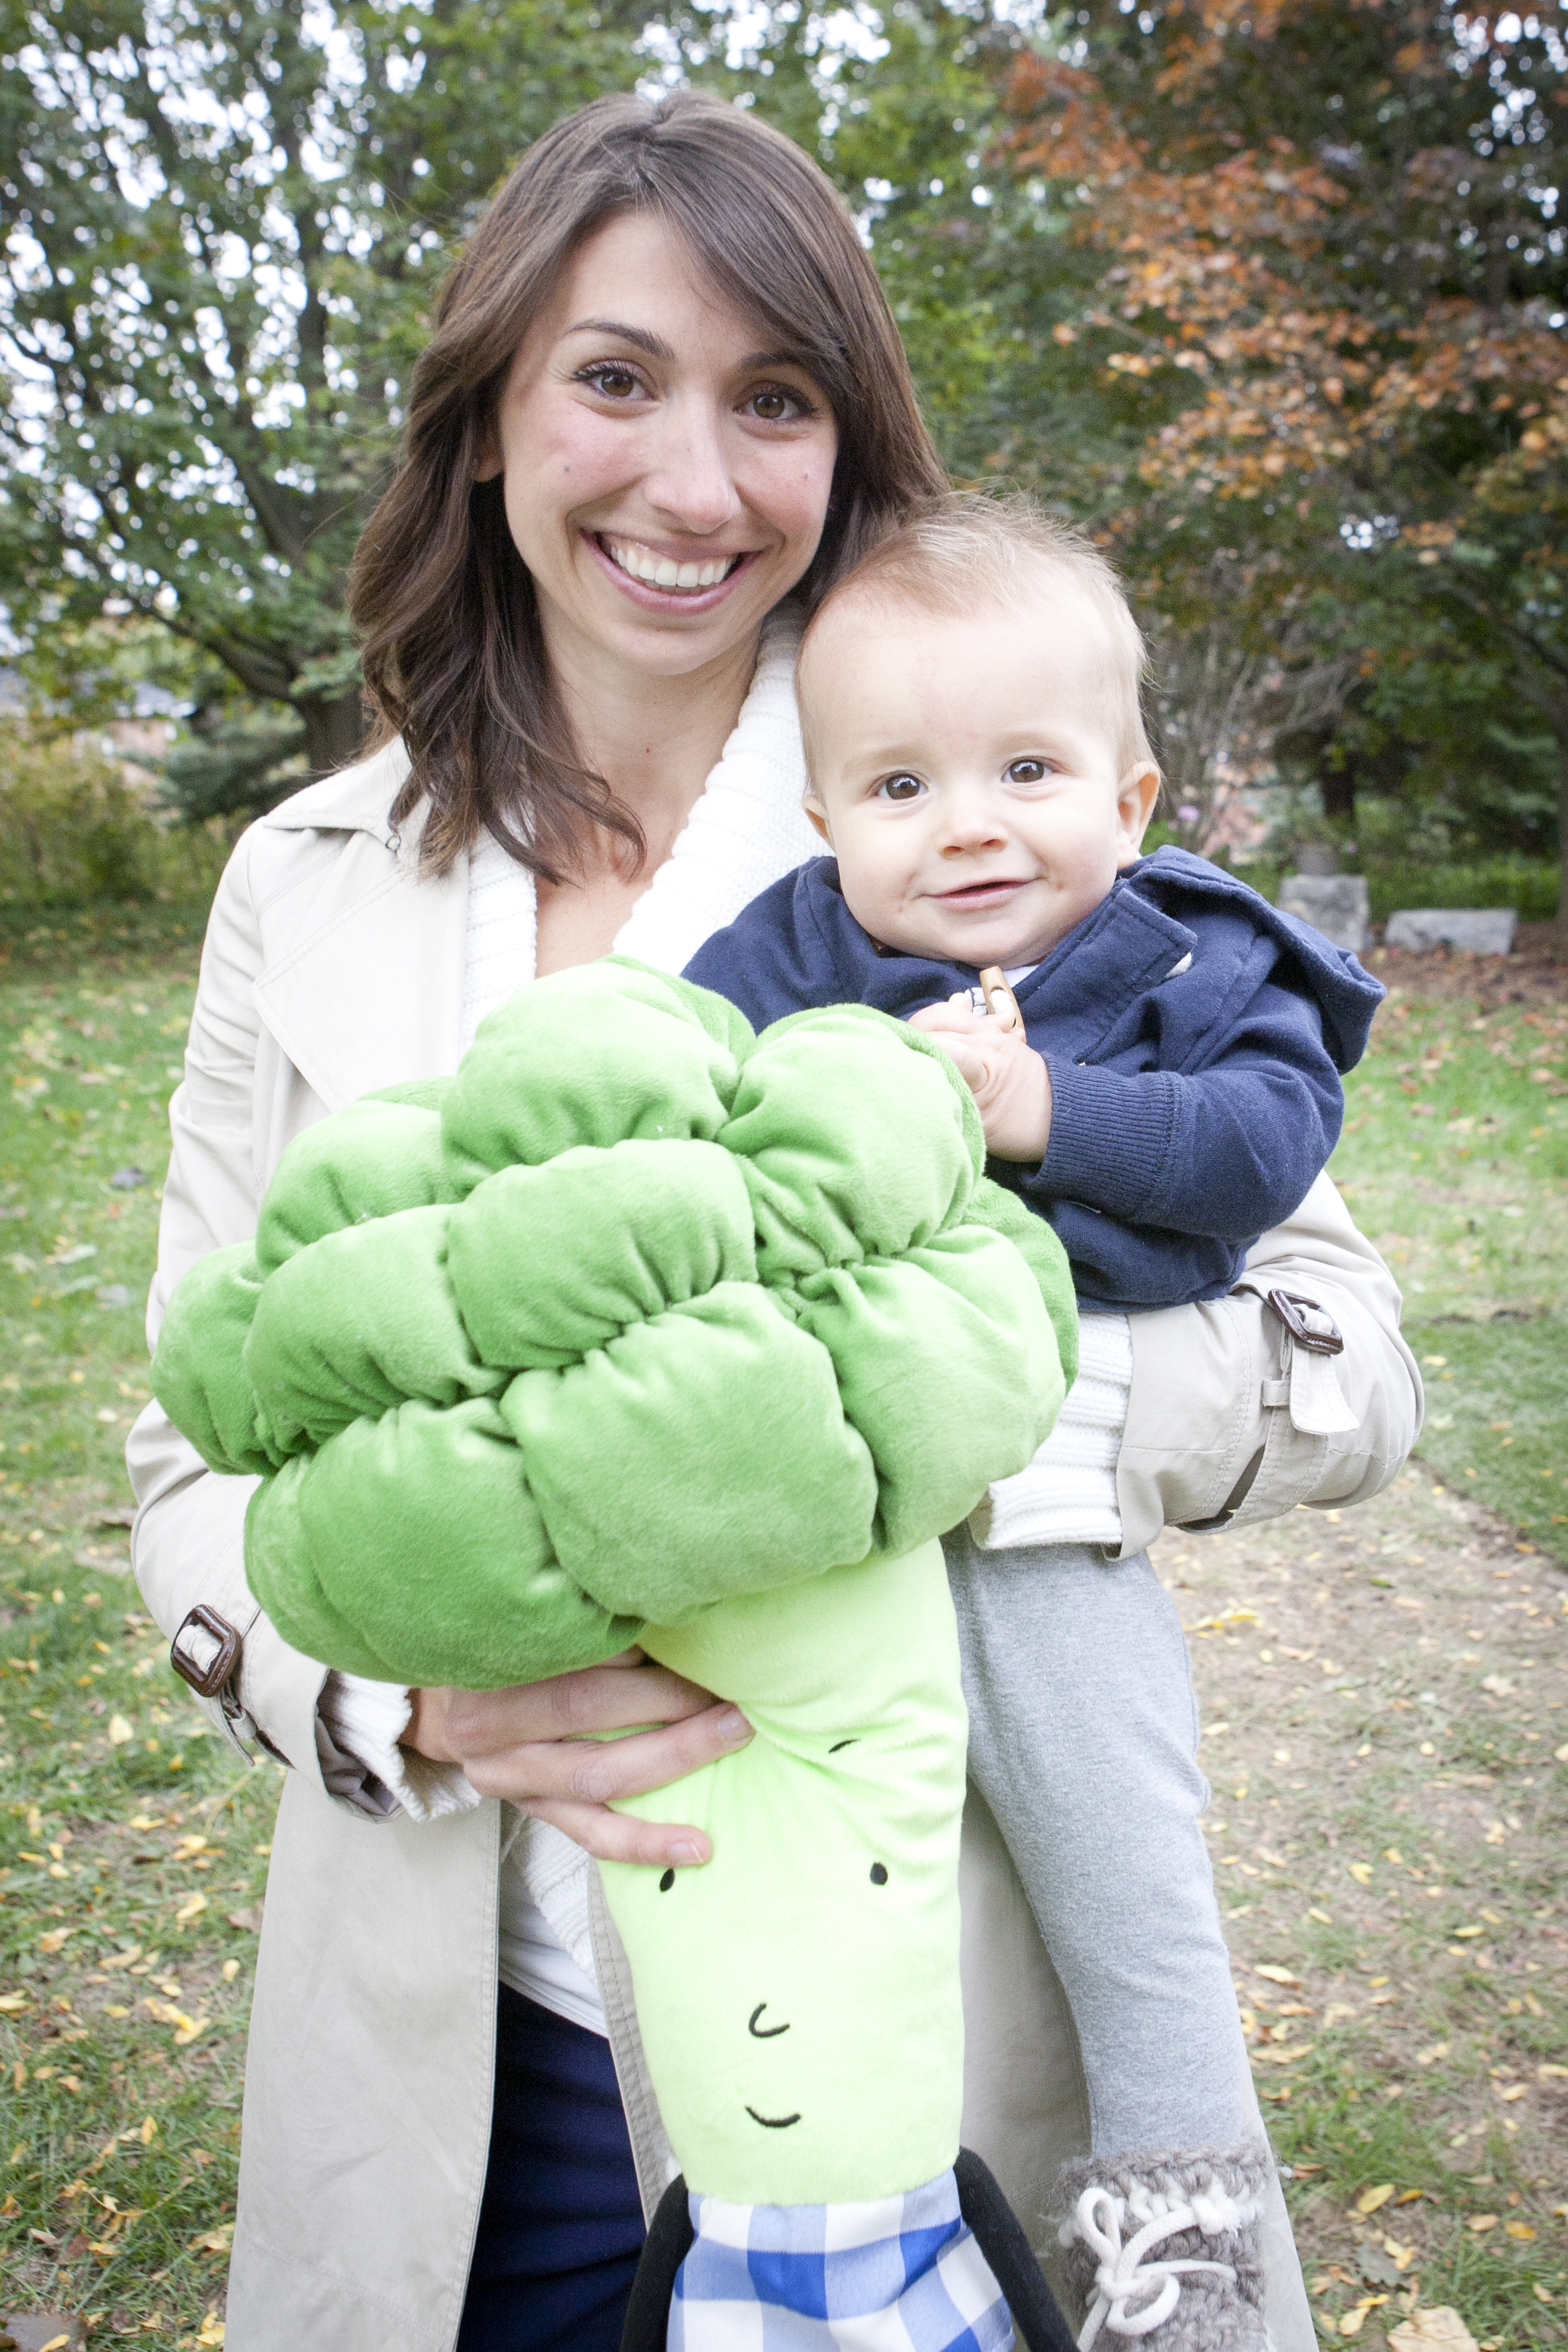 Sarah Bester, Family Nutritionist and Real Food Educator